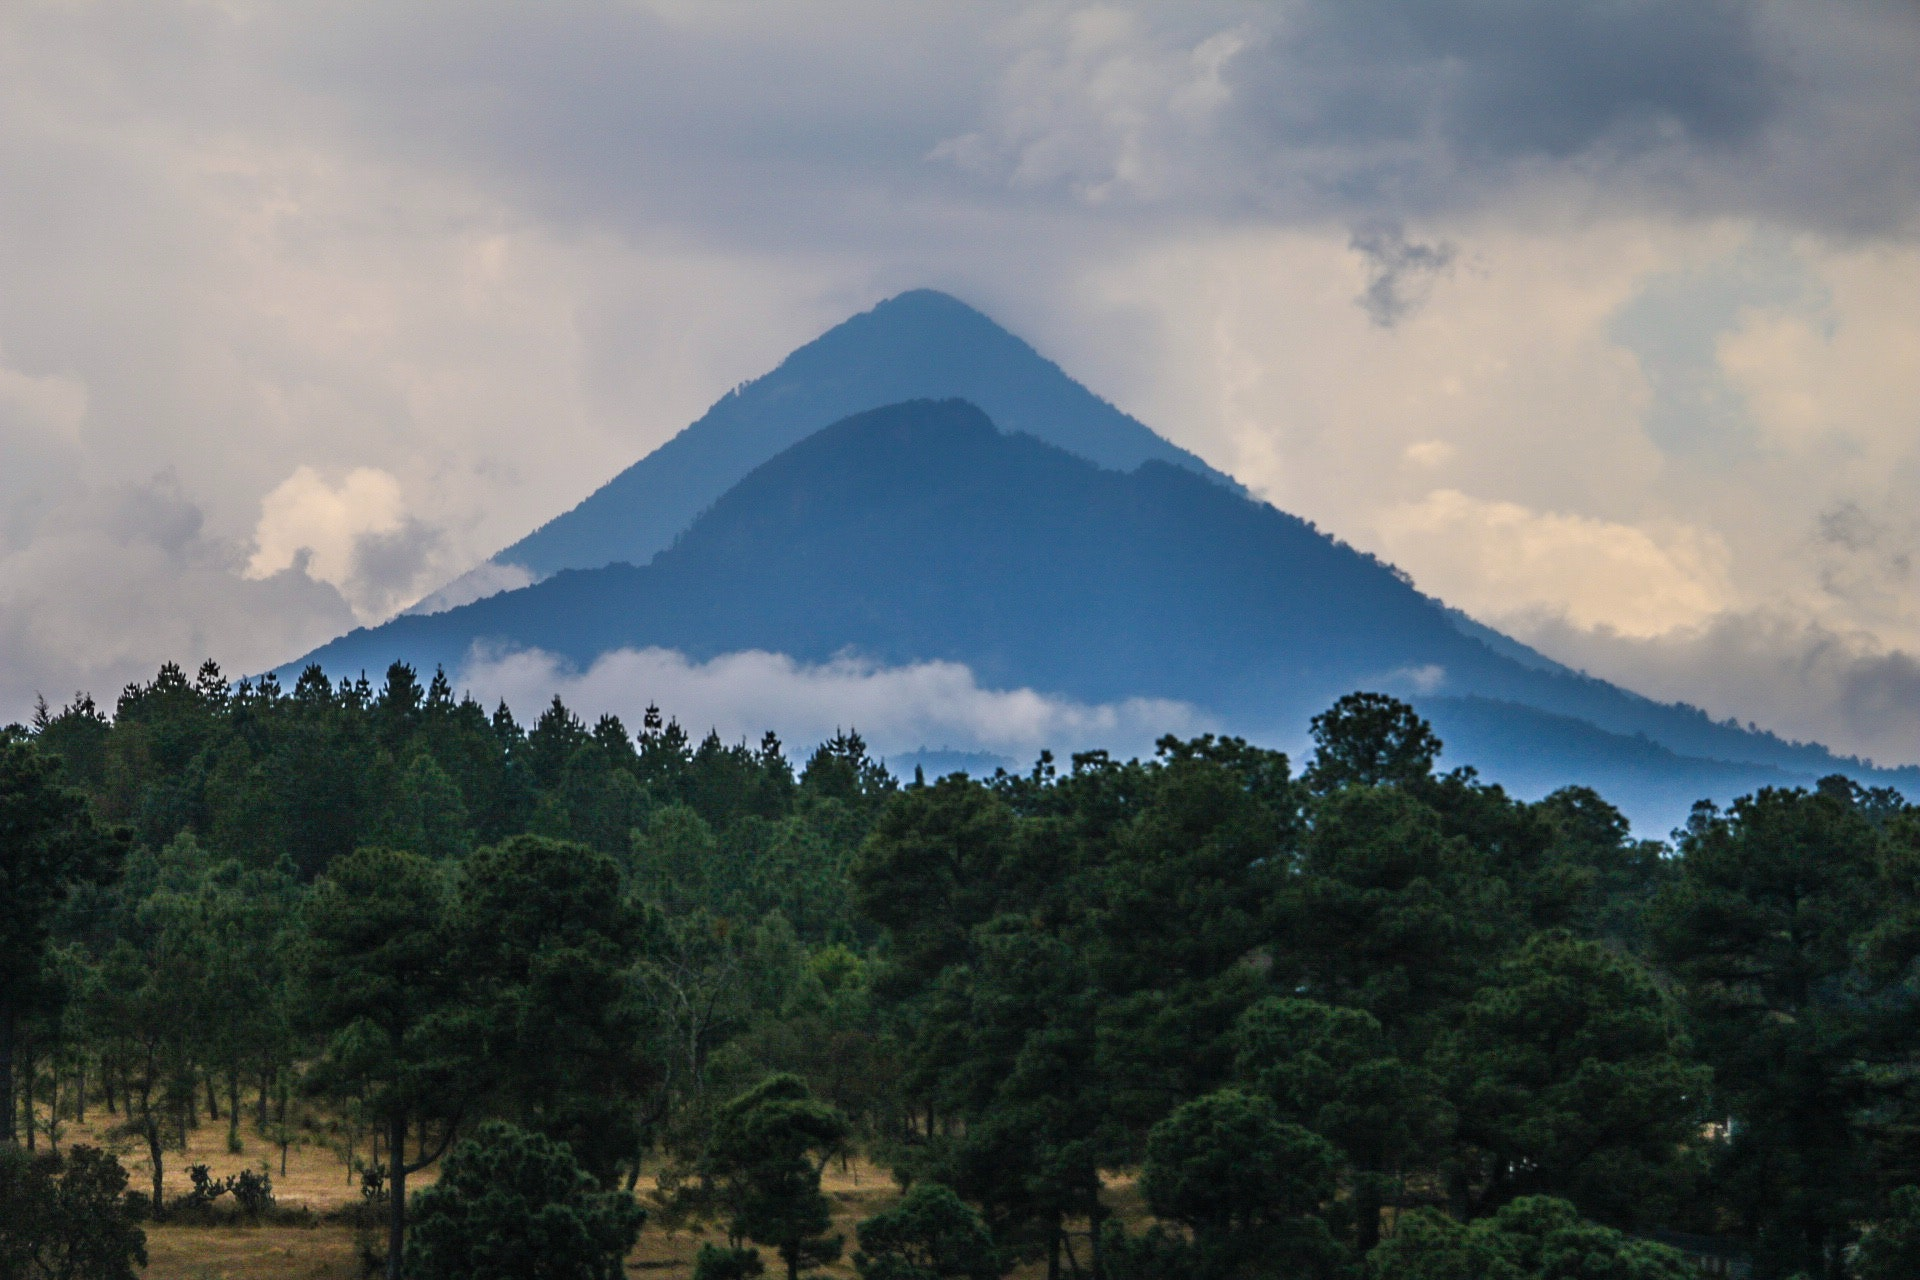 Silhouette of Mountain With Trees Photography, Clouds, Trees, Travel, Sky, HQ Photo